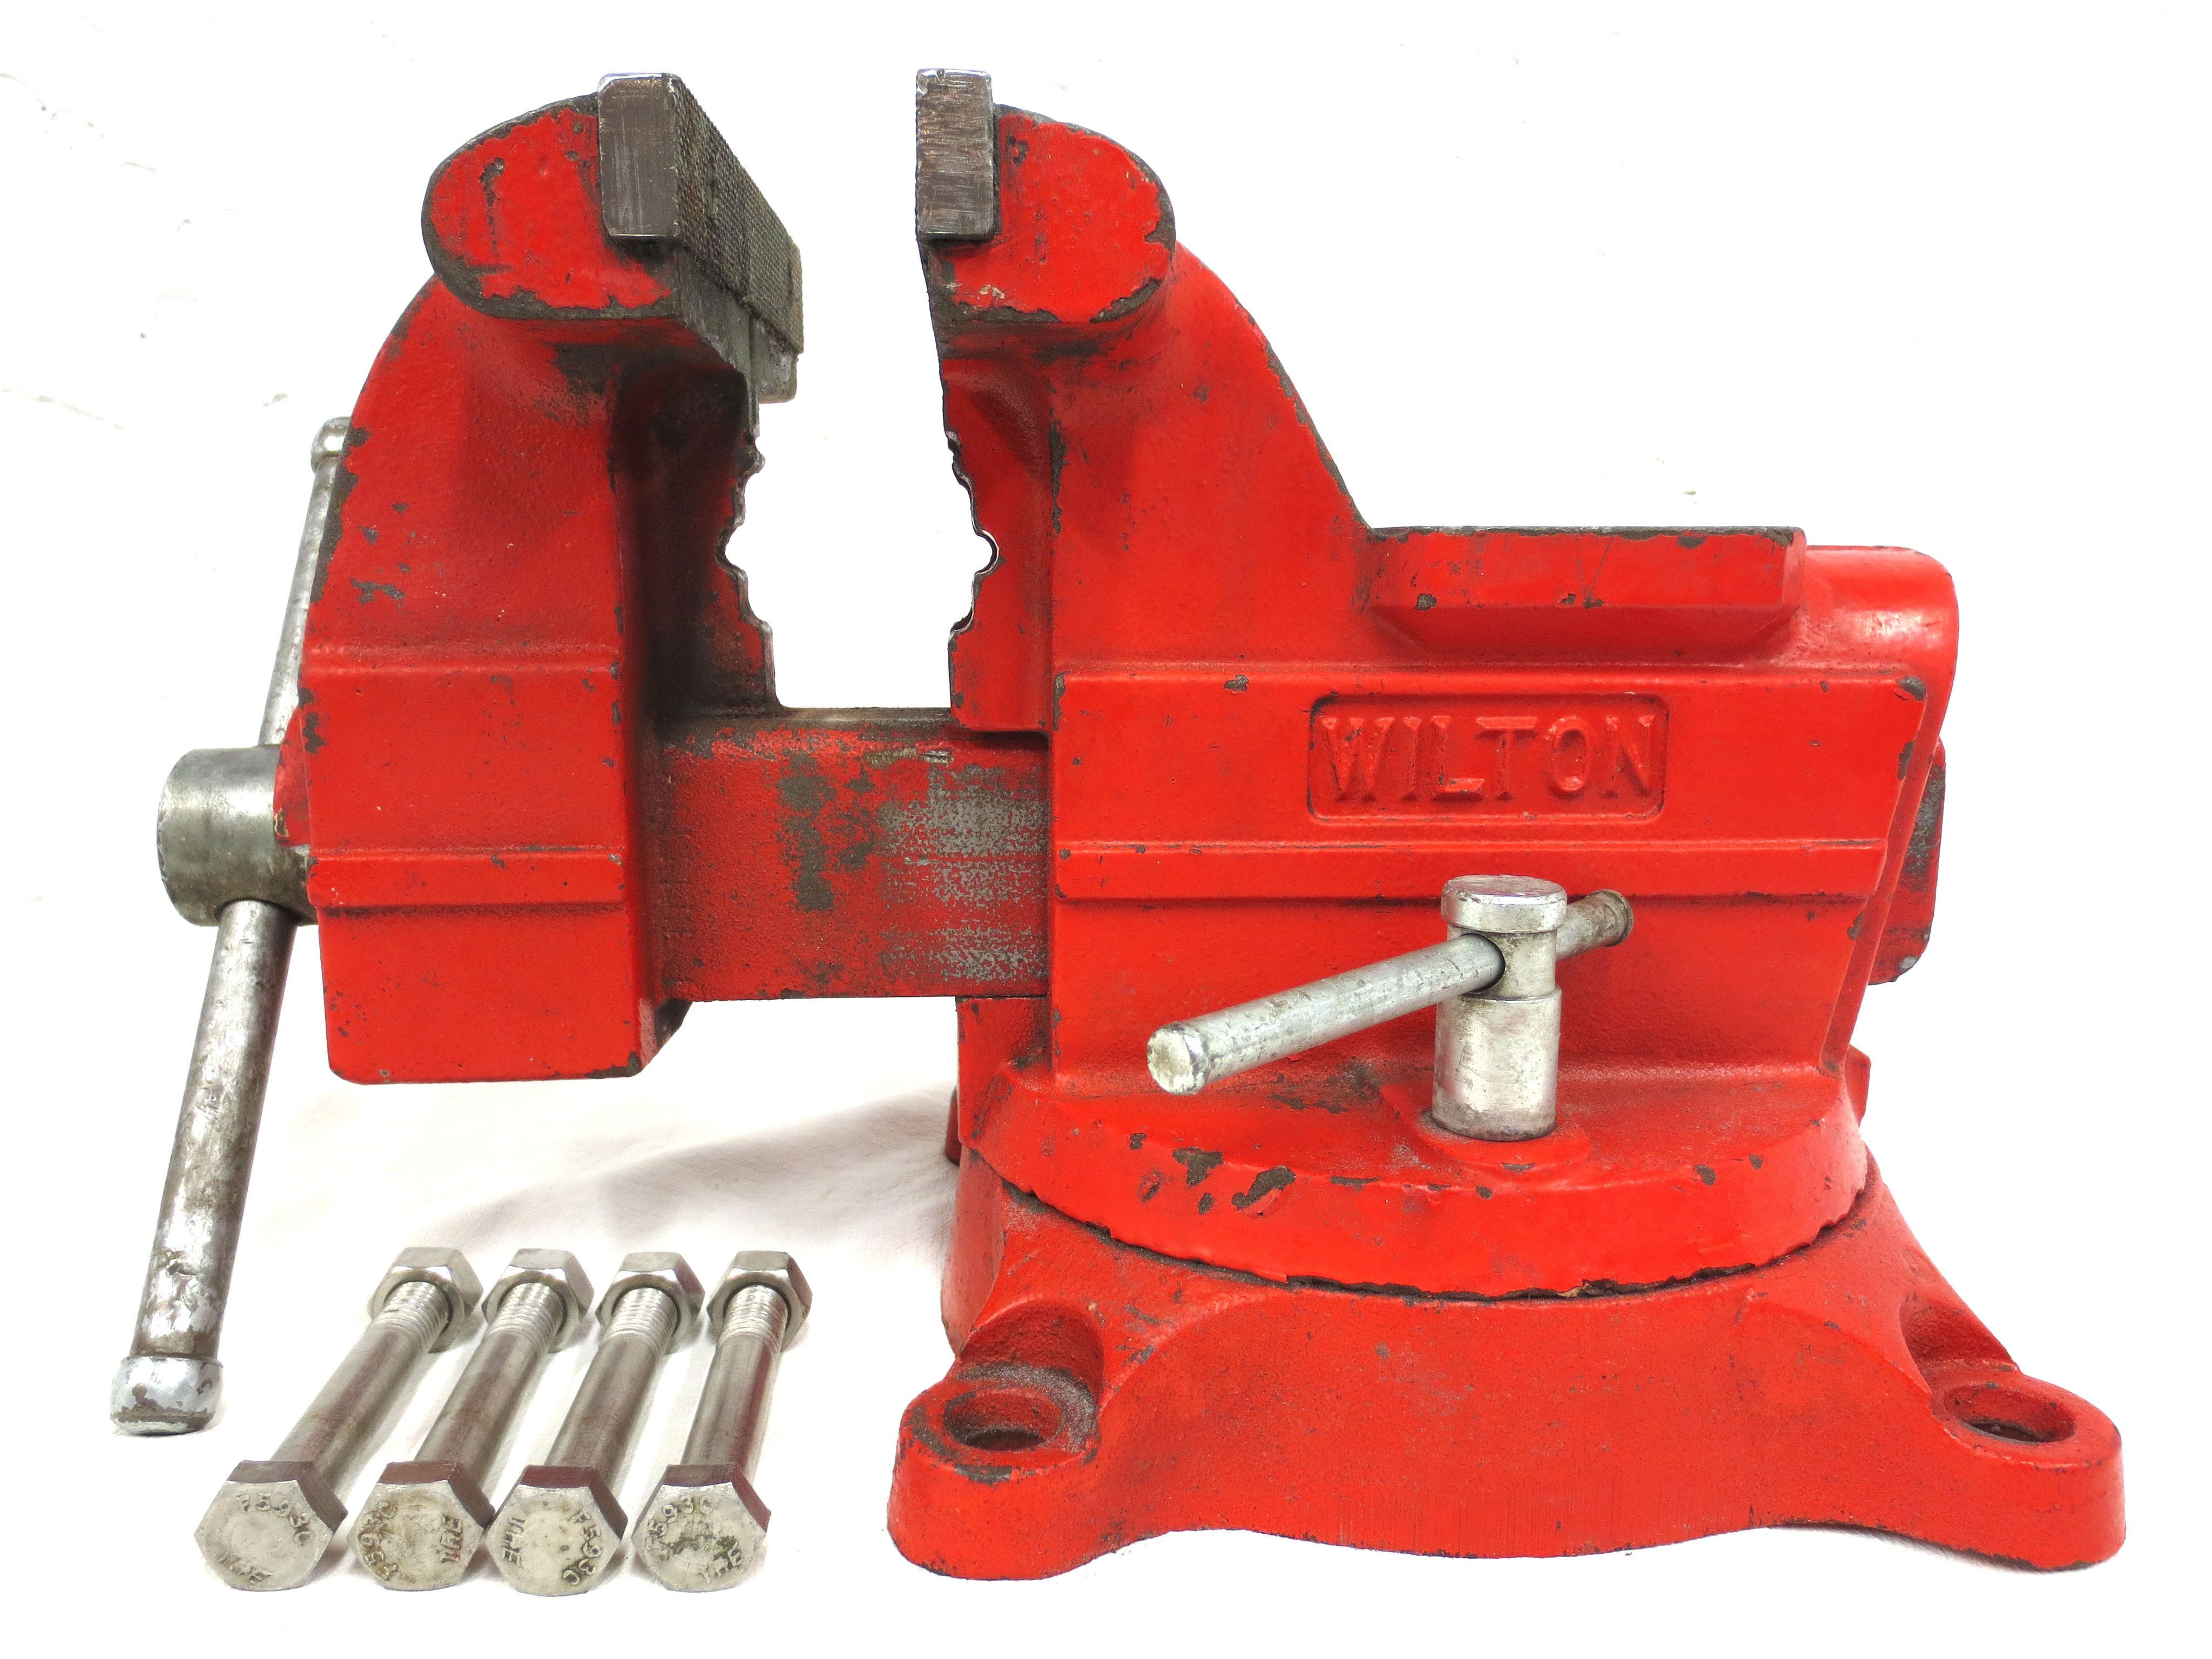 Vintage wilton vise 6 jaws swivels mechanic machinist vise red vintage wilton vise 7 jaws swivels gunsmith mechanic machinist vise red usa excellent working fandeluxe Choice Image